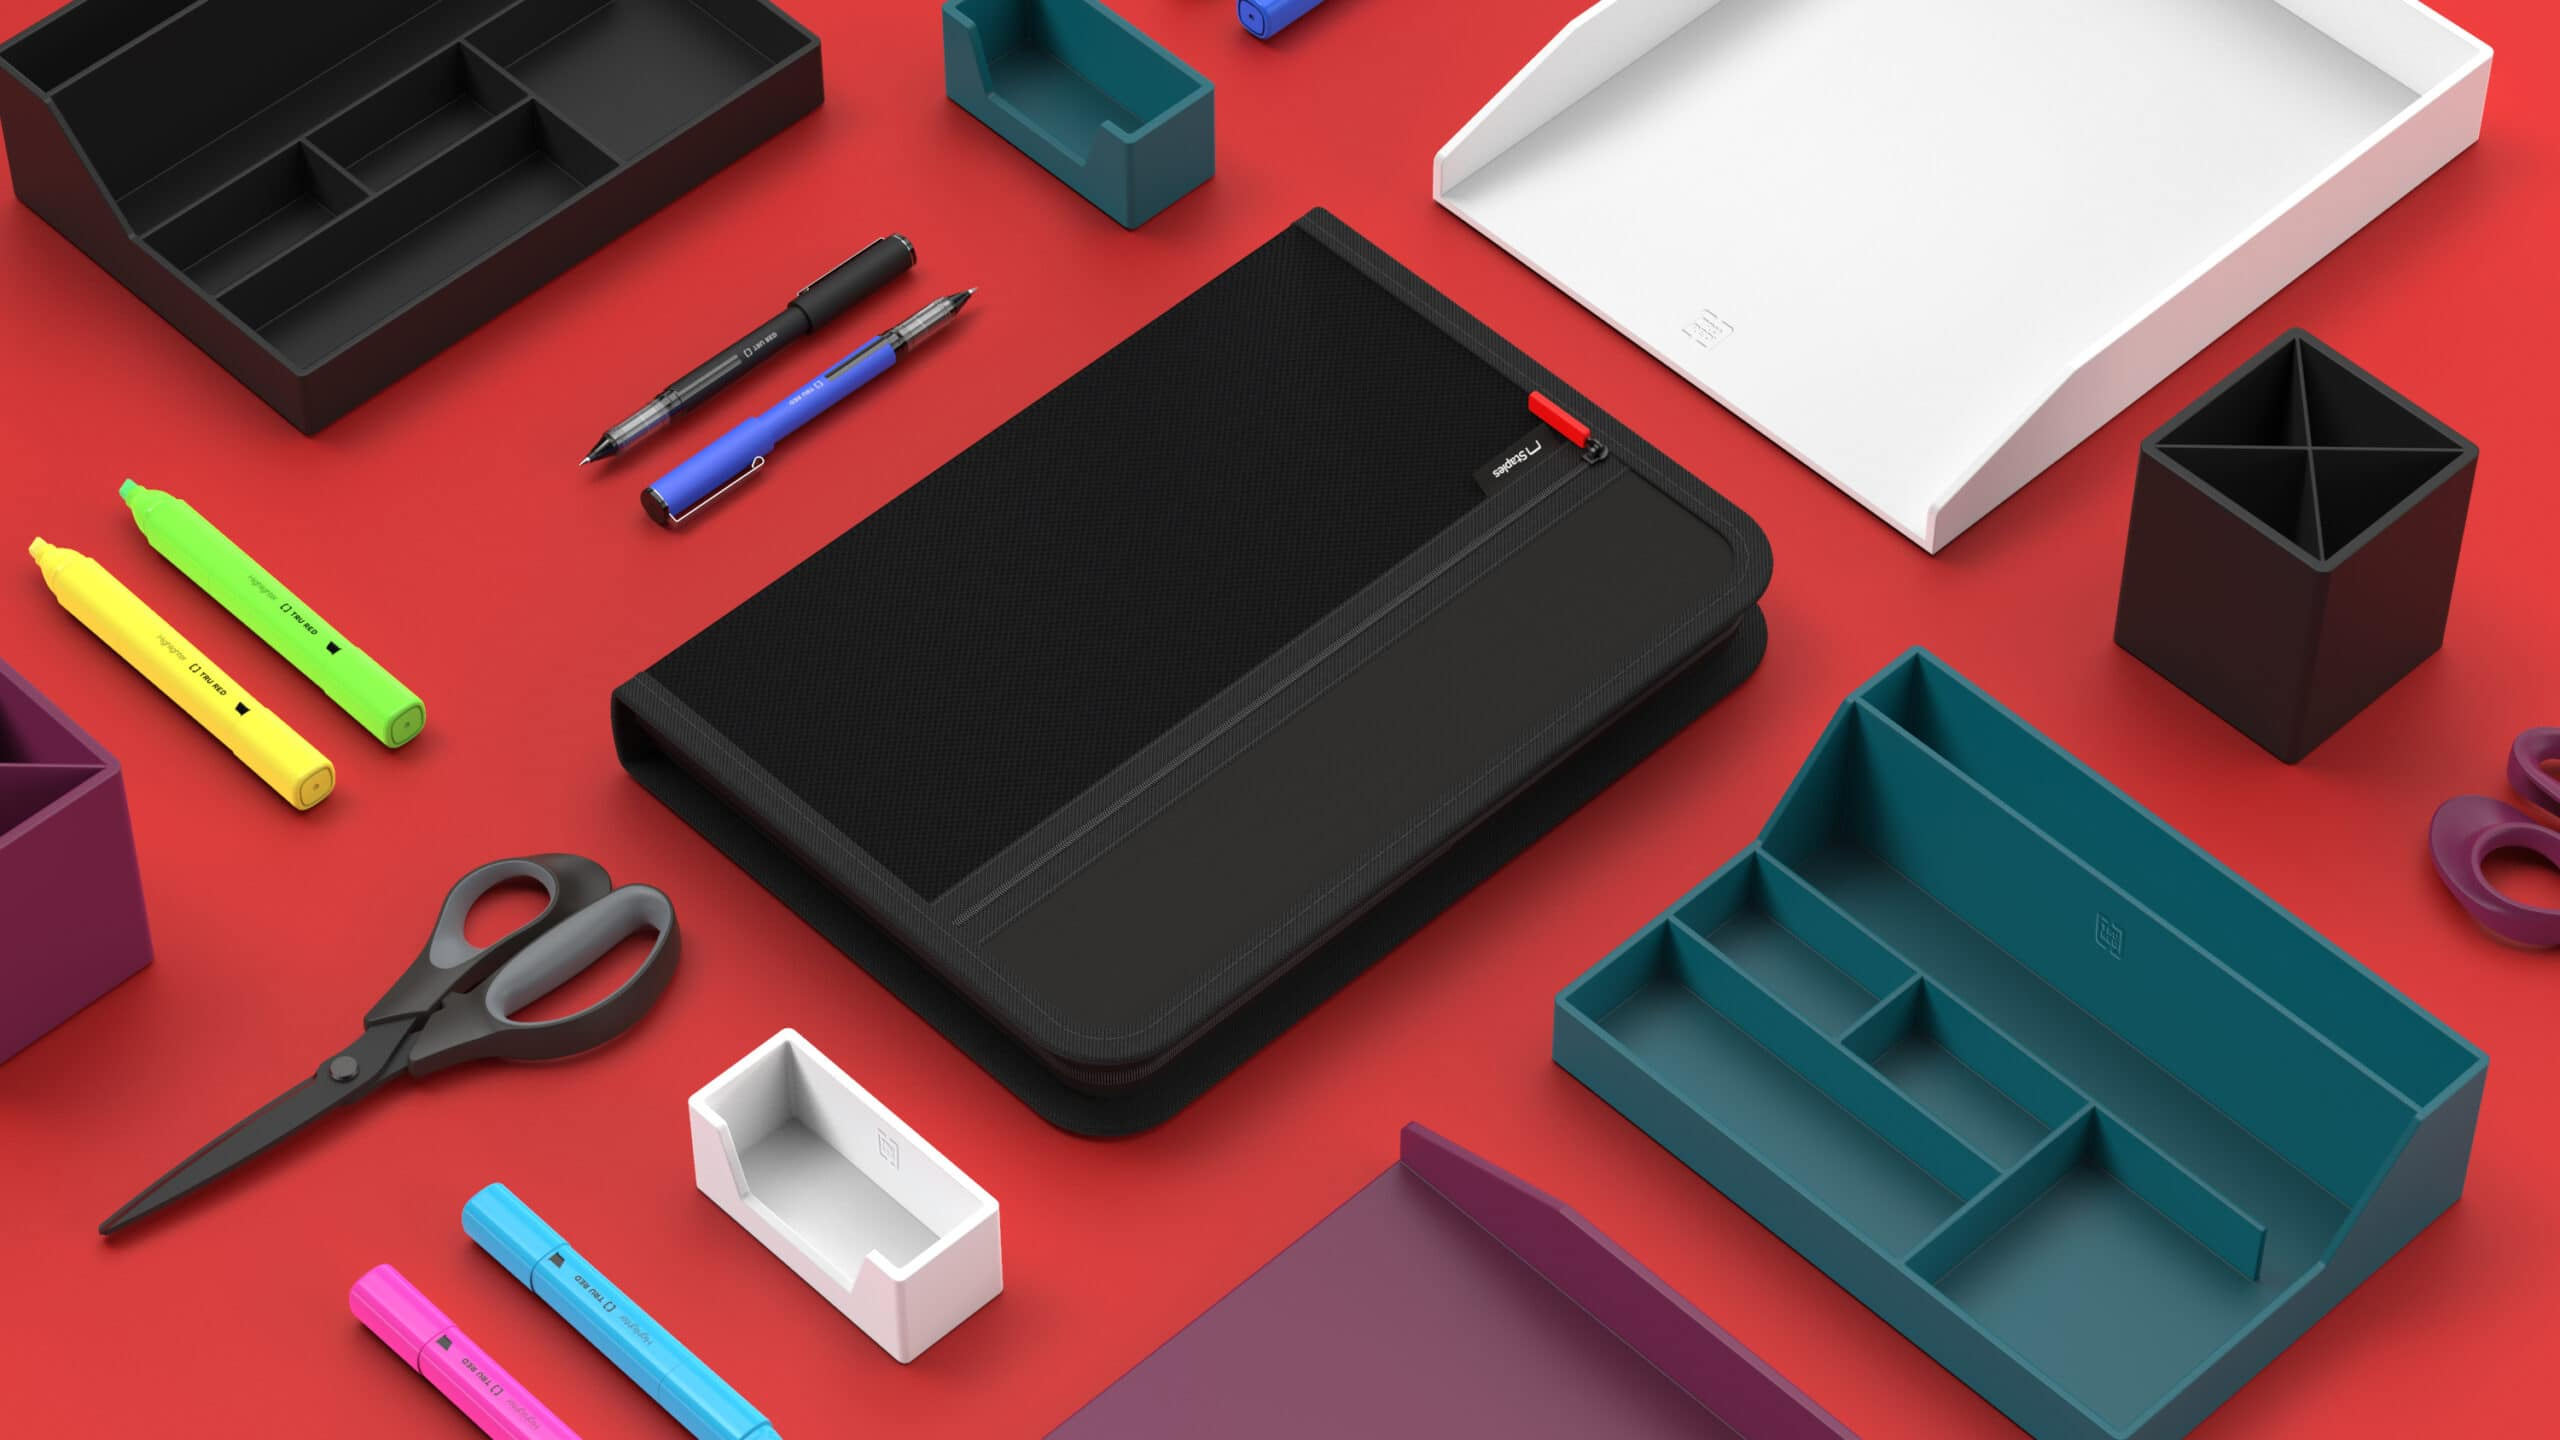 3D CAD Render by Sprout Studios of Staples Desk Accessories spaced out on a red surface